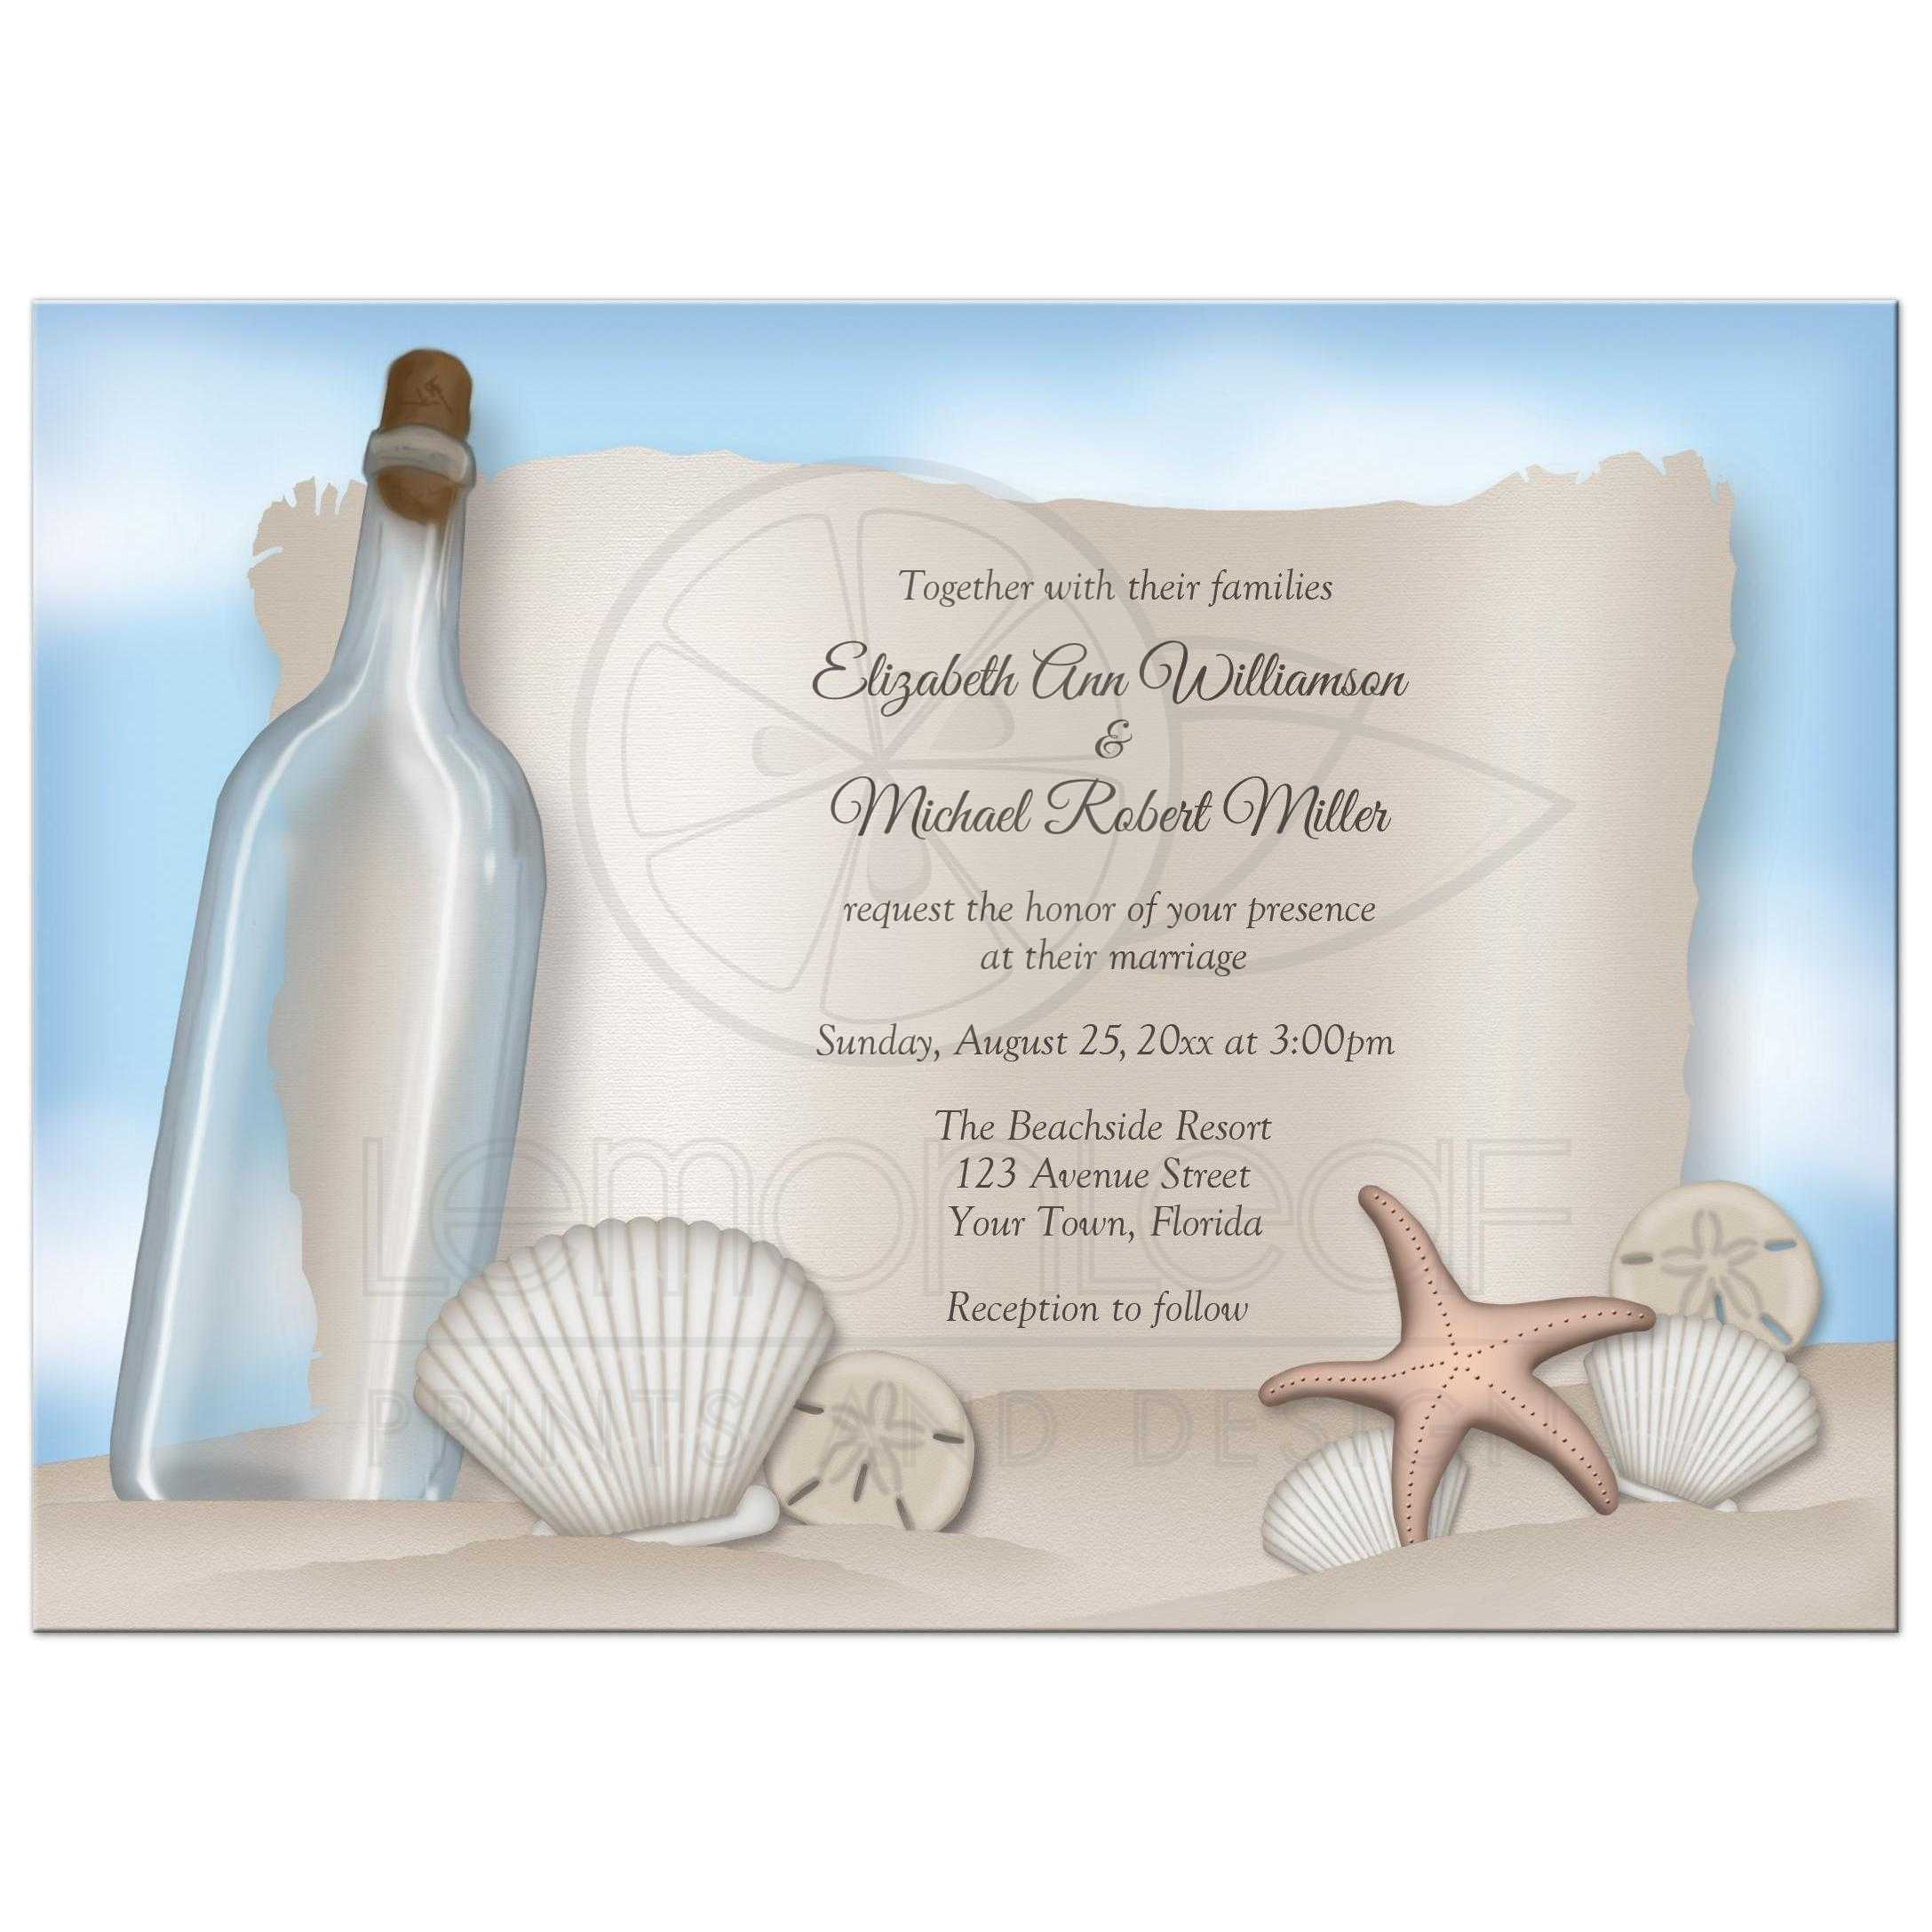 Christening Invitation Cards Templates is nice invitations design